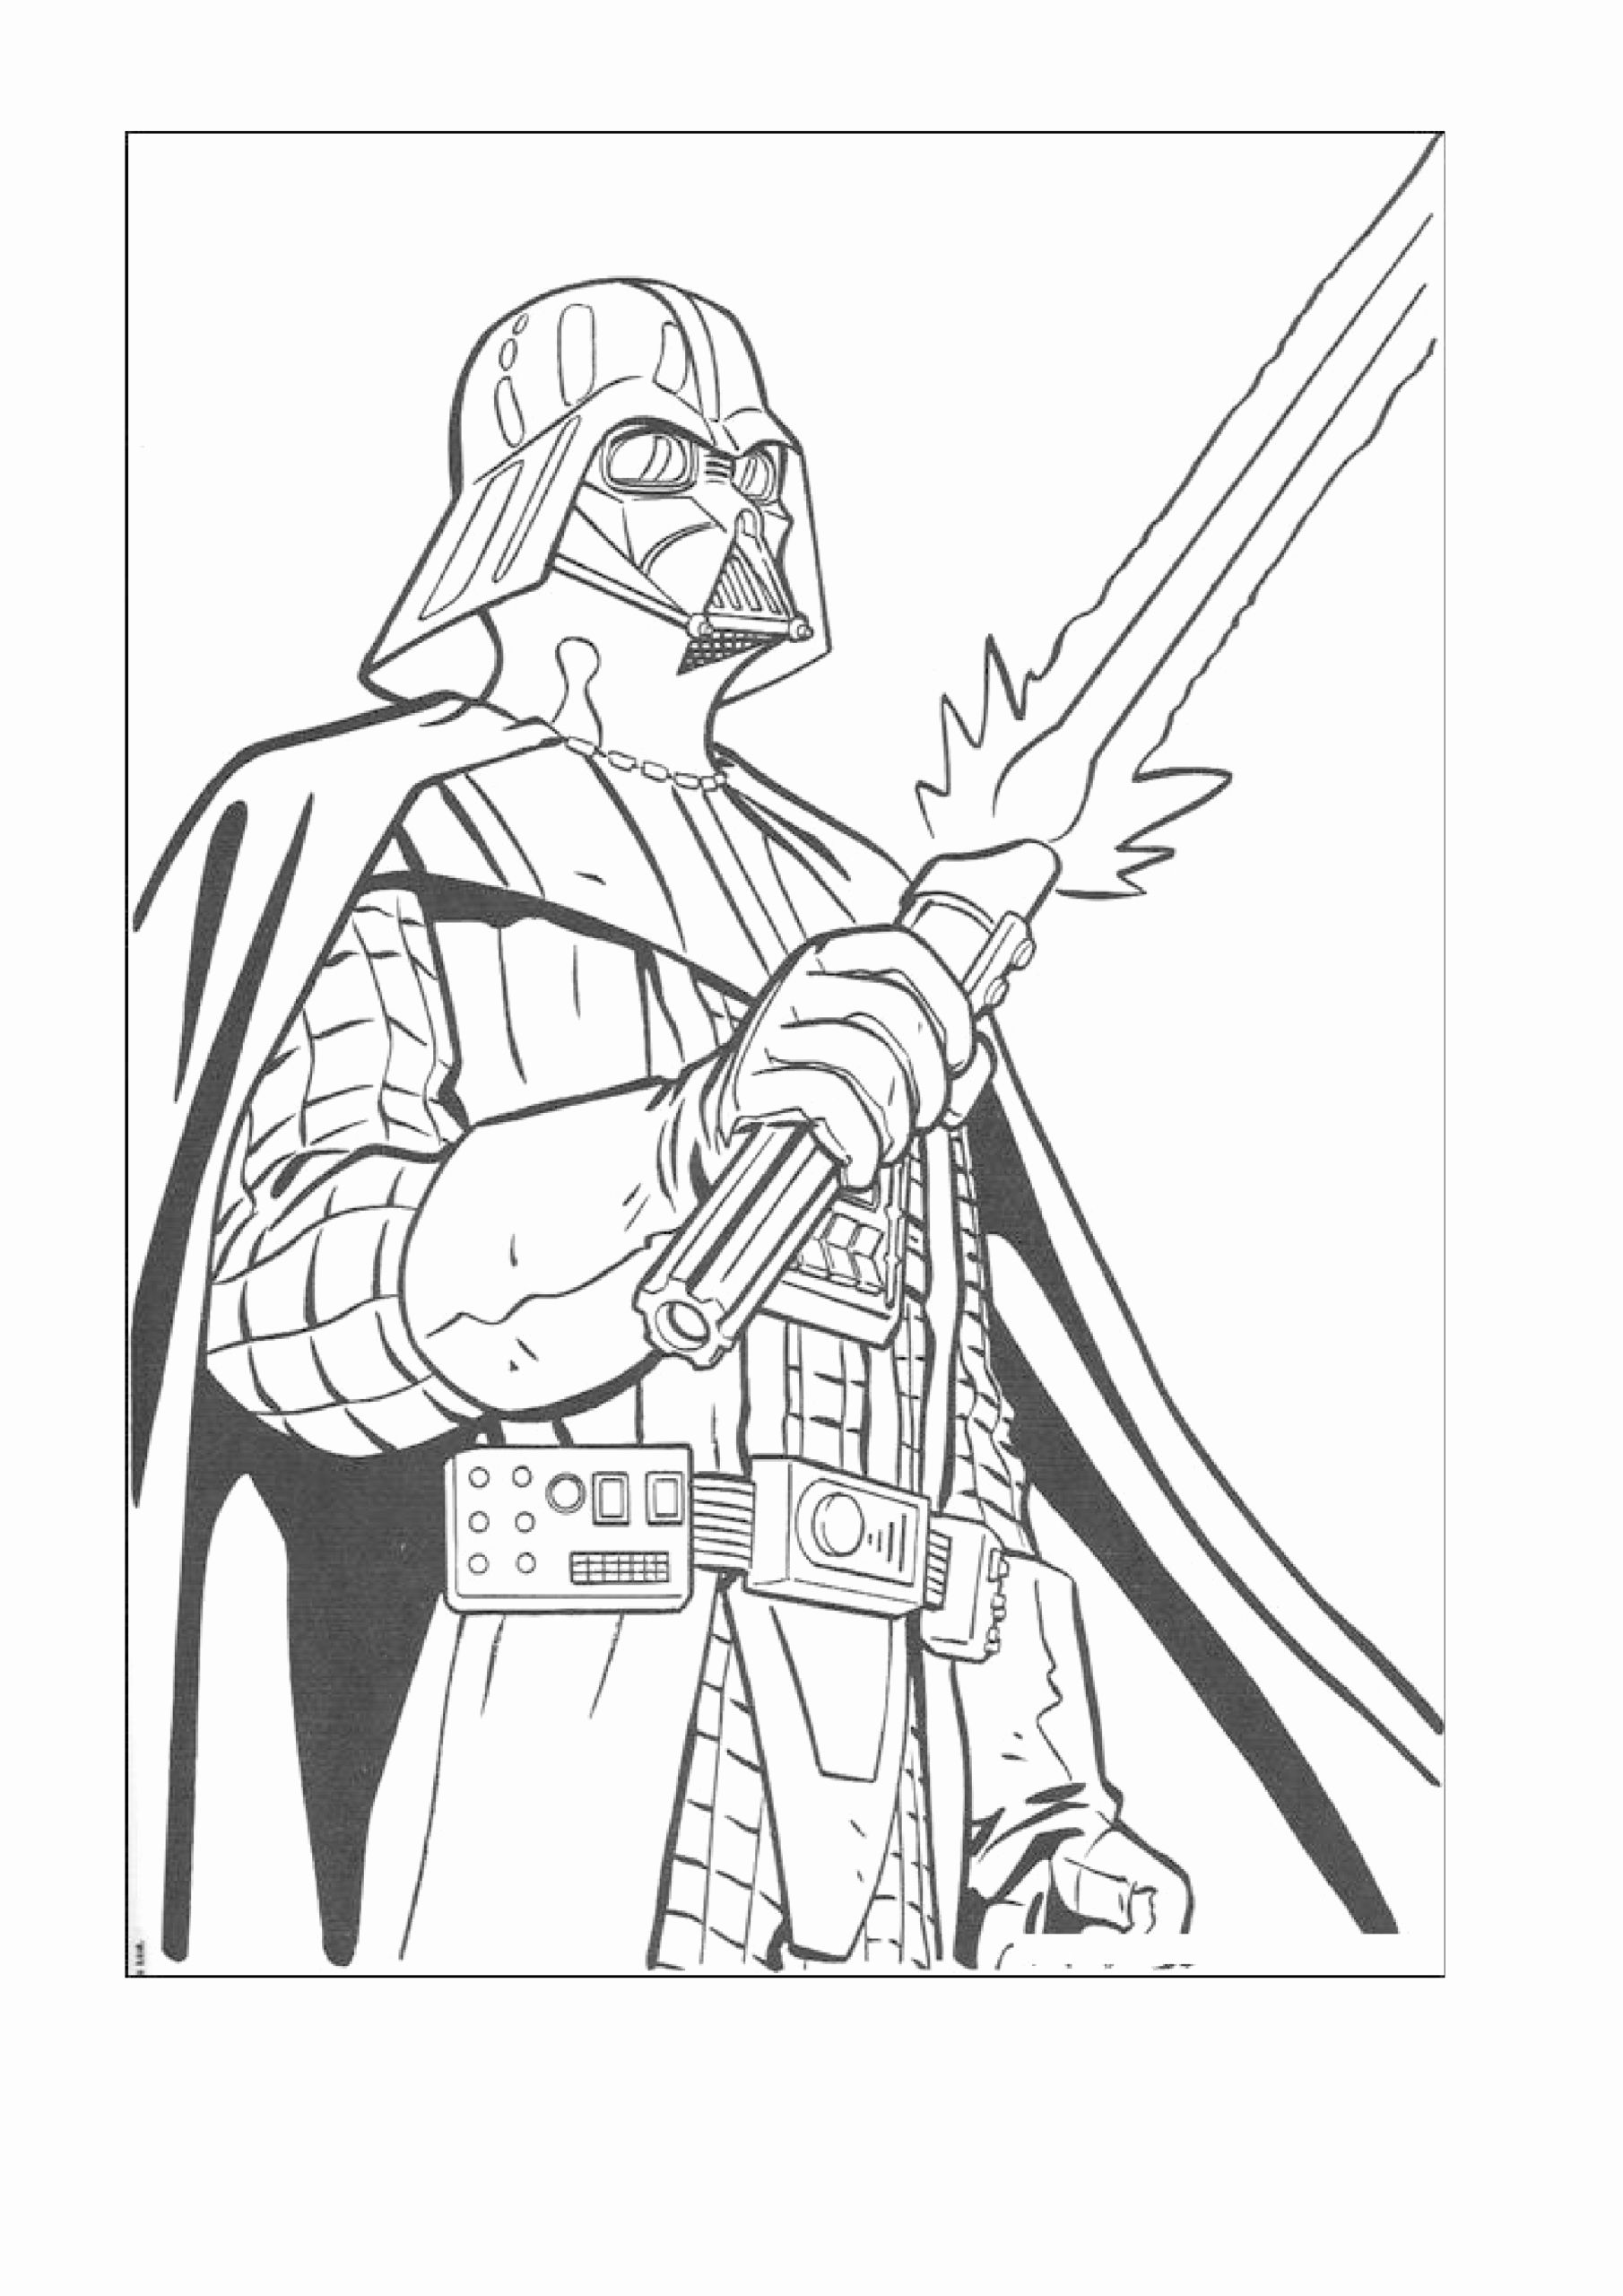 Kids Star Wars Coloring Pages Cartoon In 2020 Star Wars Coloring Sheet Star Wars Drawings Star Wars Coloring Book